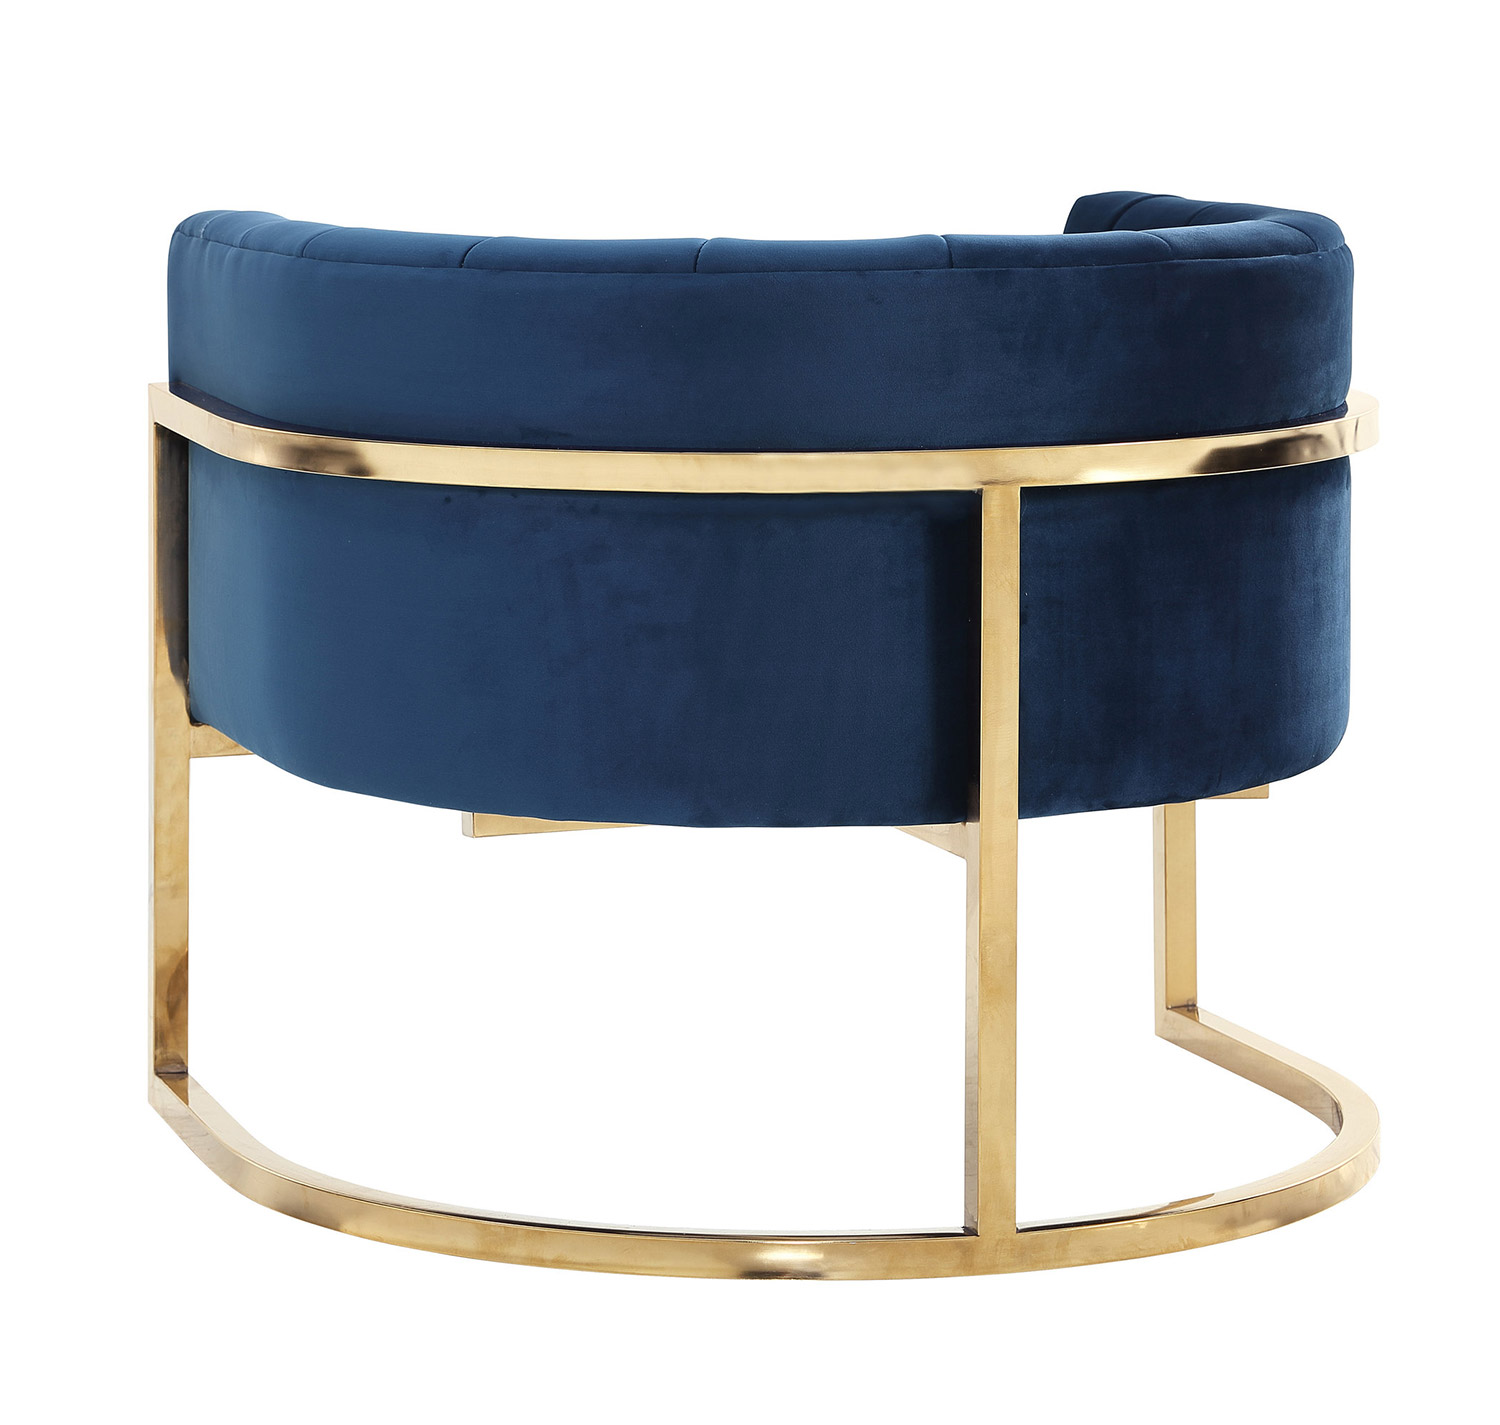 TOV Furniture Magnolia Chair with Gold Base - Navy